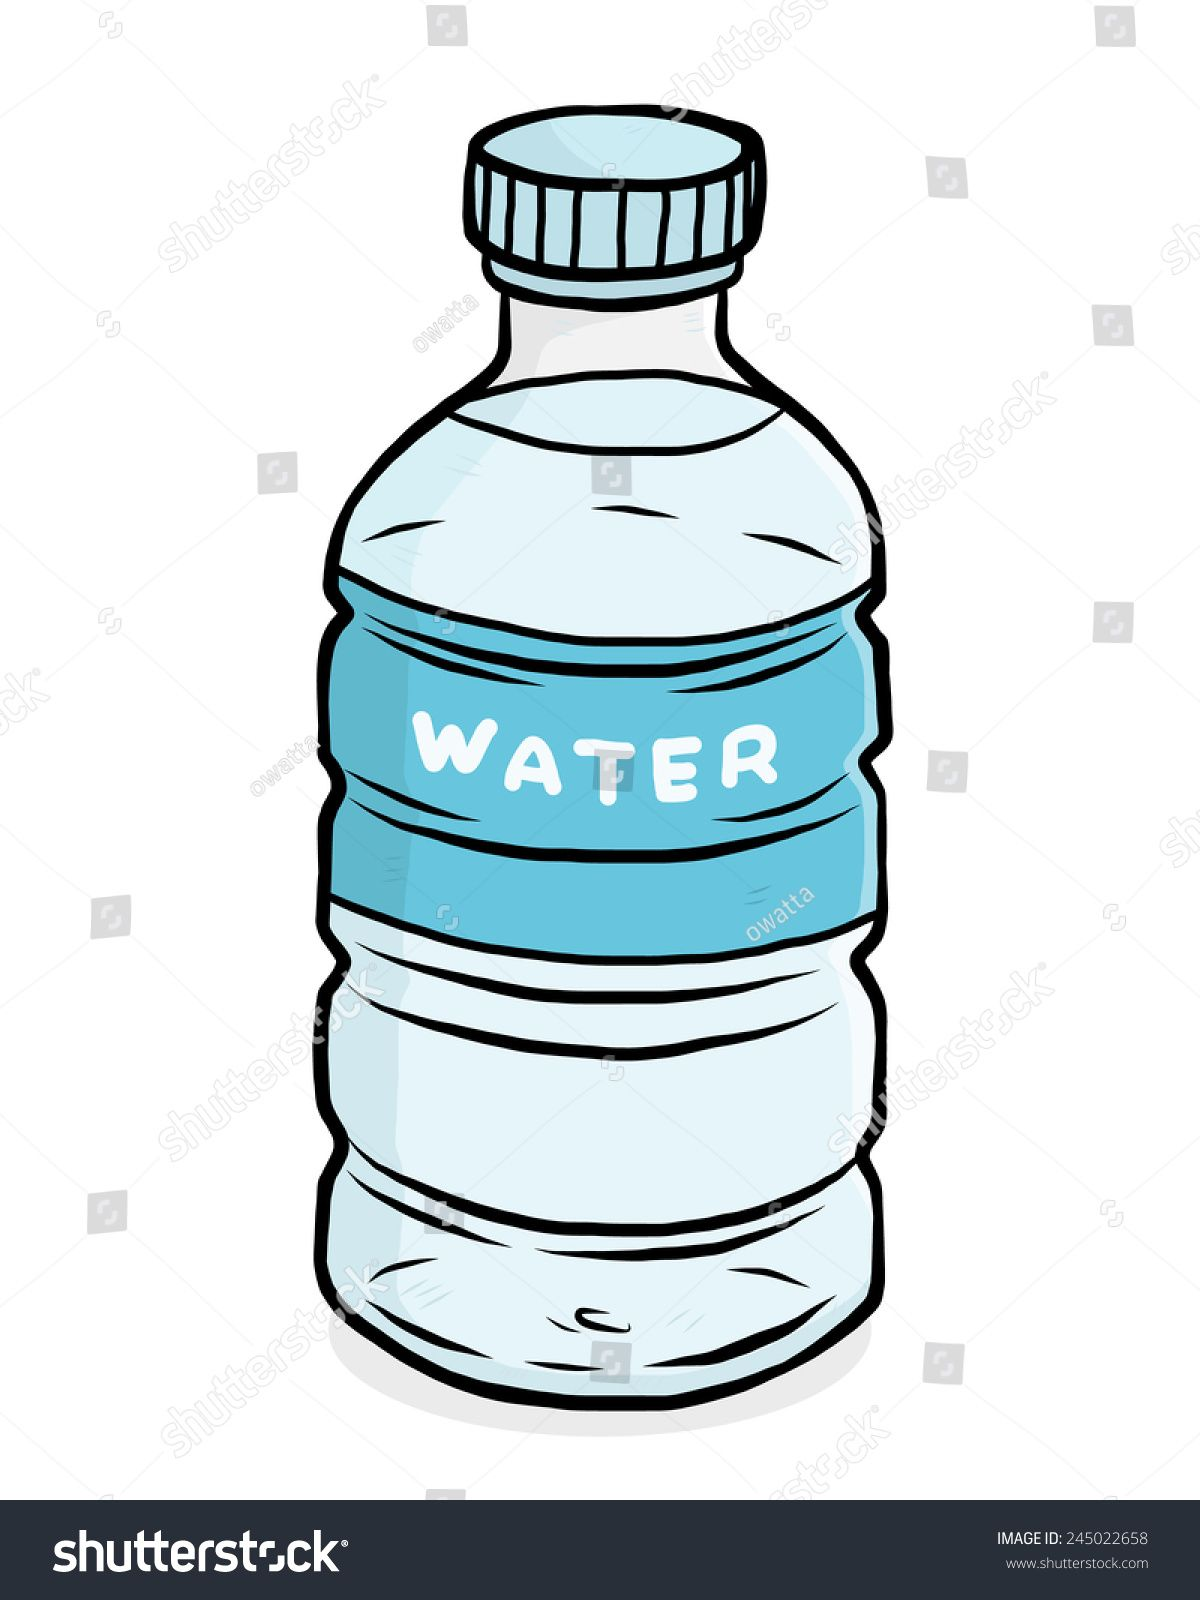 Water Plastic Bottle U002f Cartoon Vector And Illustration Hand Drawn Style Isolated On White Background Ad Bottle Drawing Water Bottle Drawing Bottle